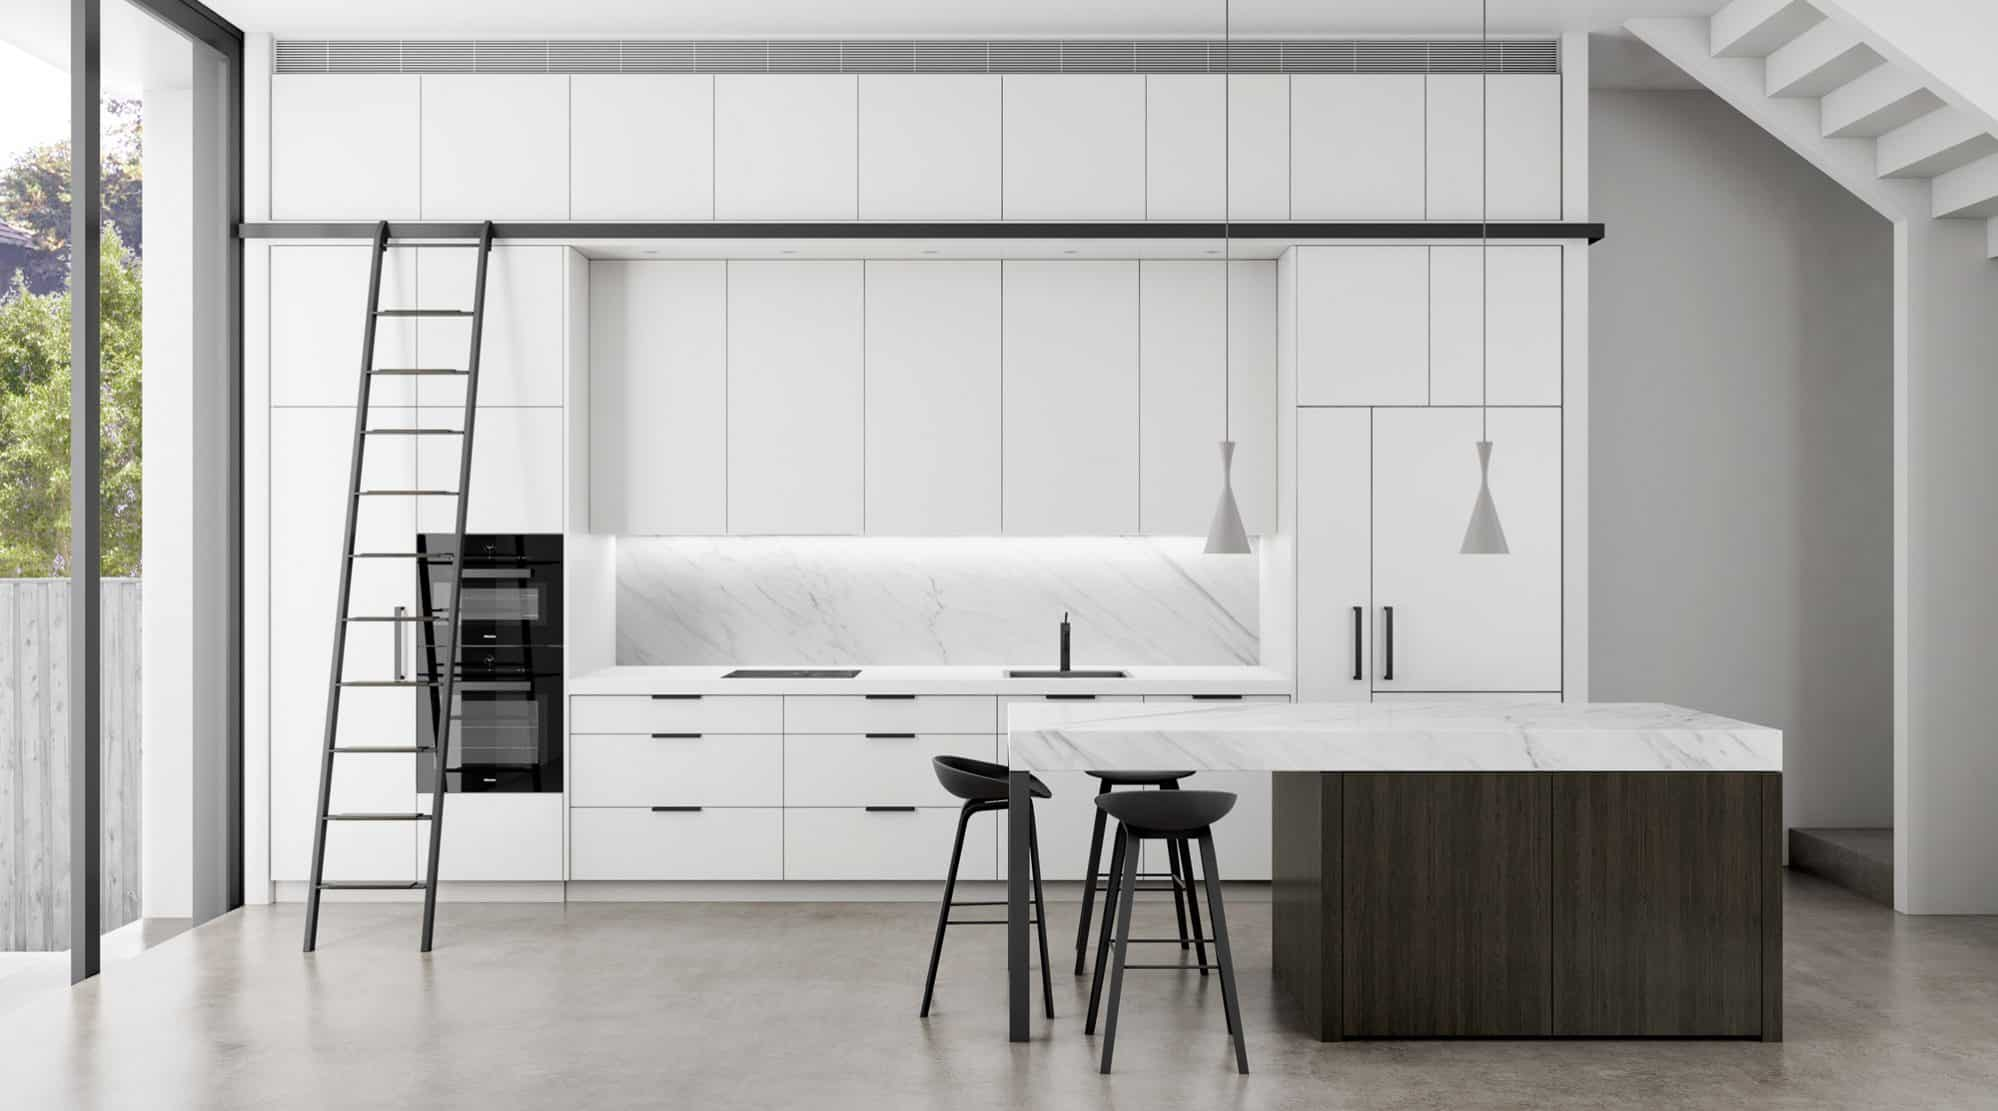 Tall narrow kitchen with black ladder on a track